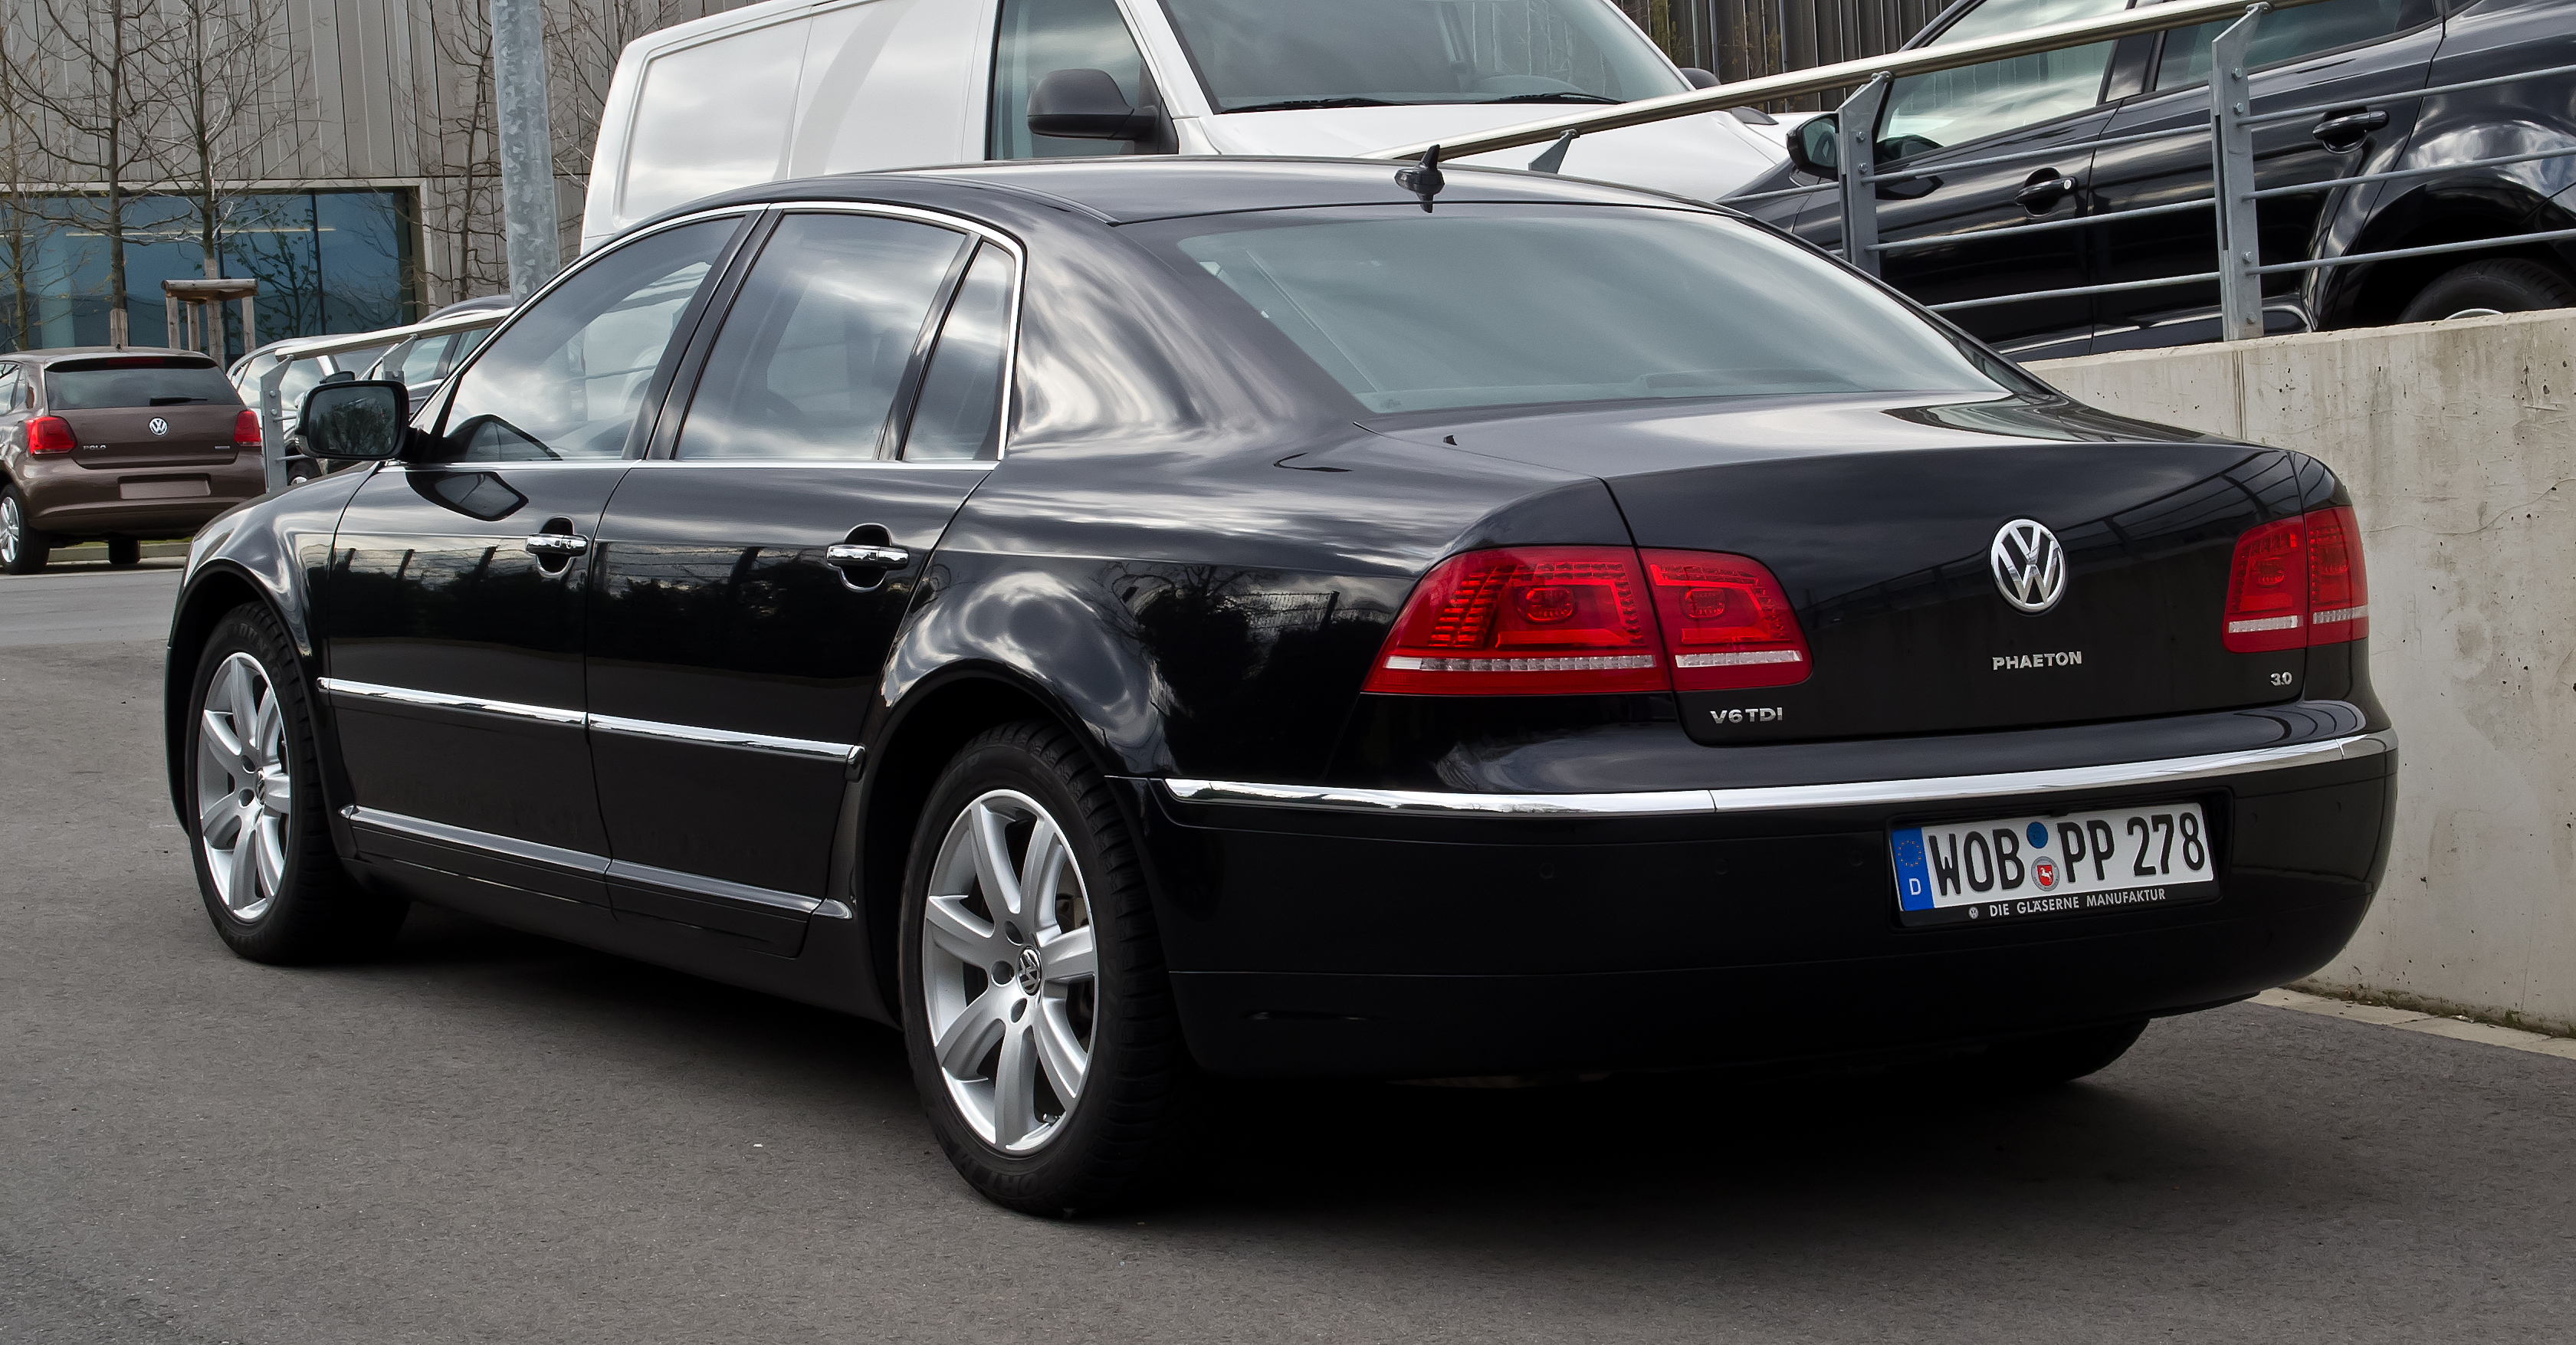 VW Phaeton V6 TDI 3.0 photo 15